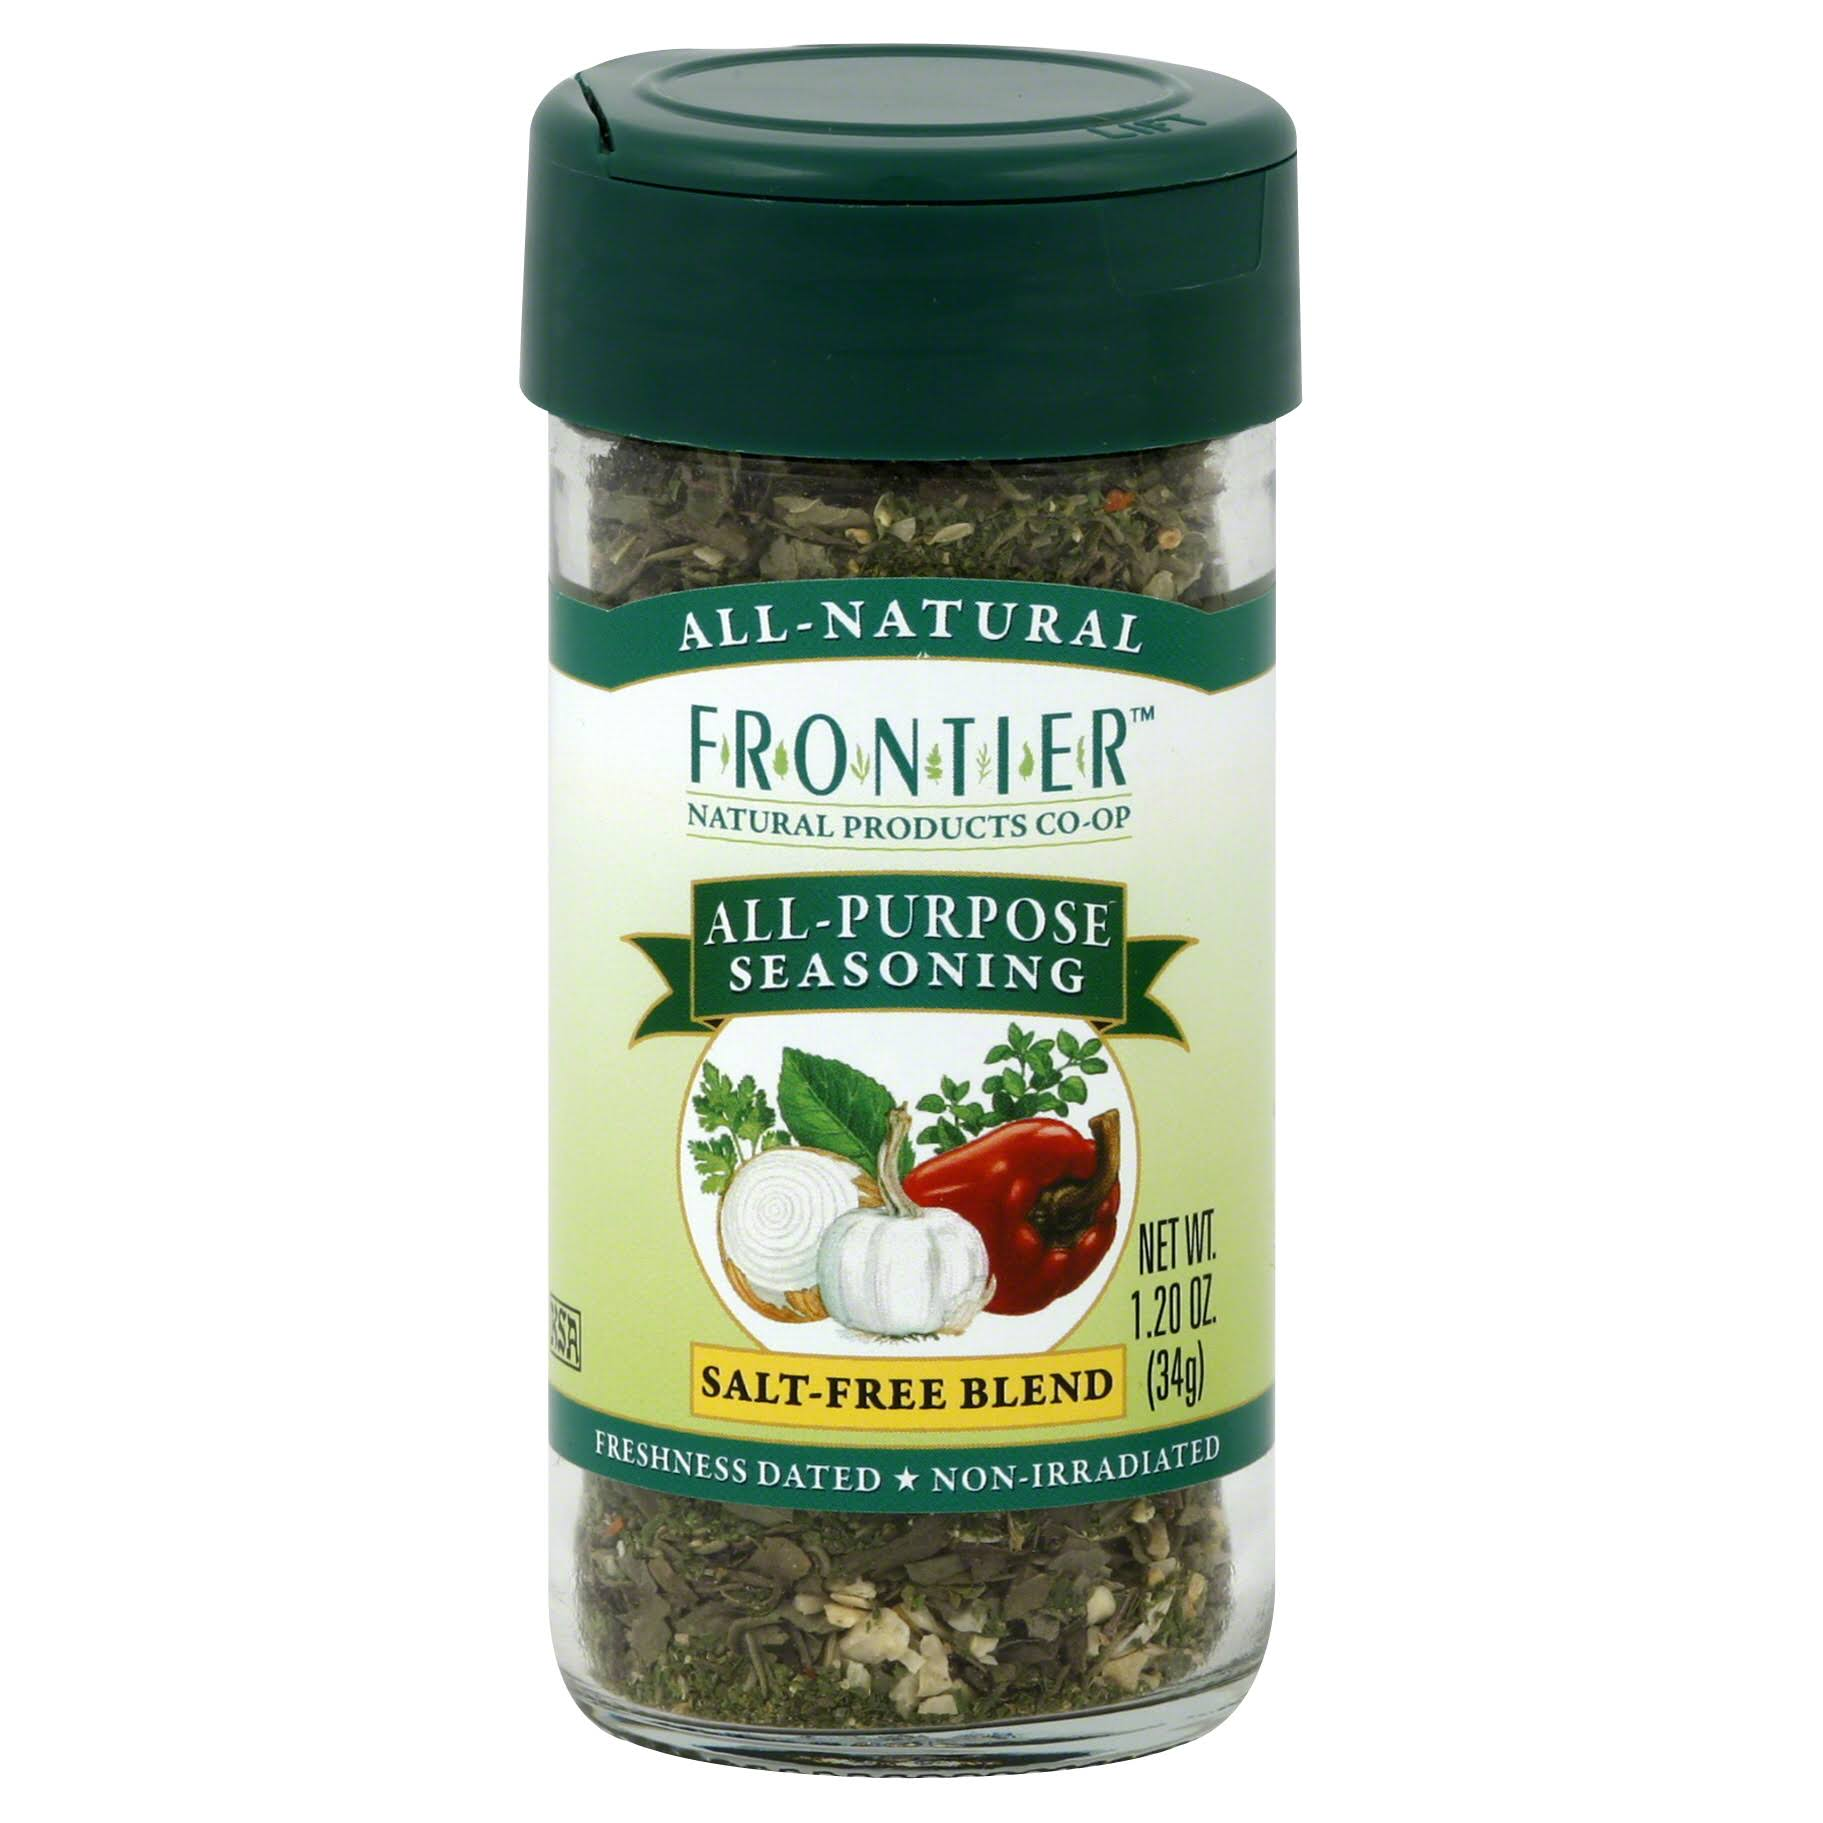 Frontier All-Purpose Seasoning Blend